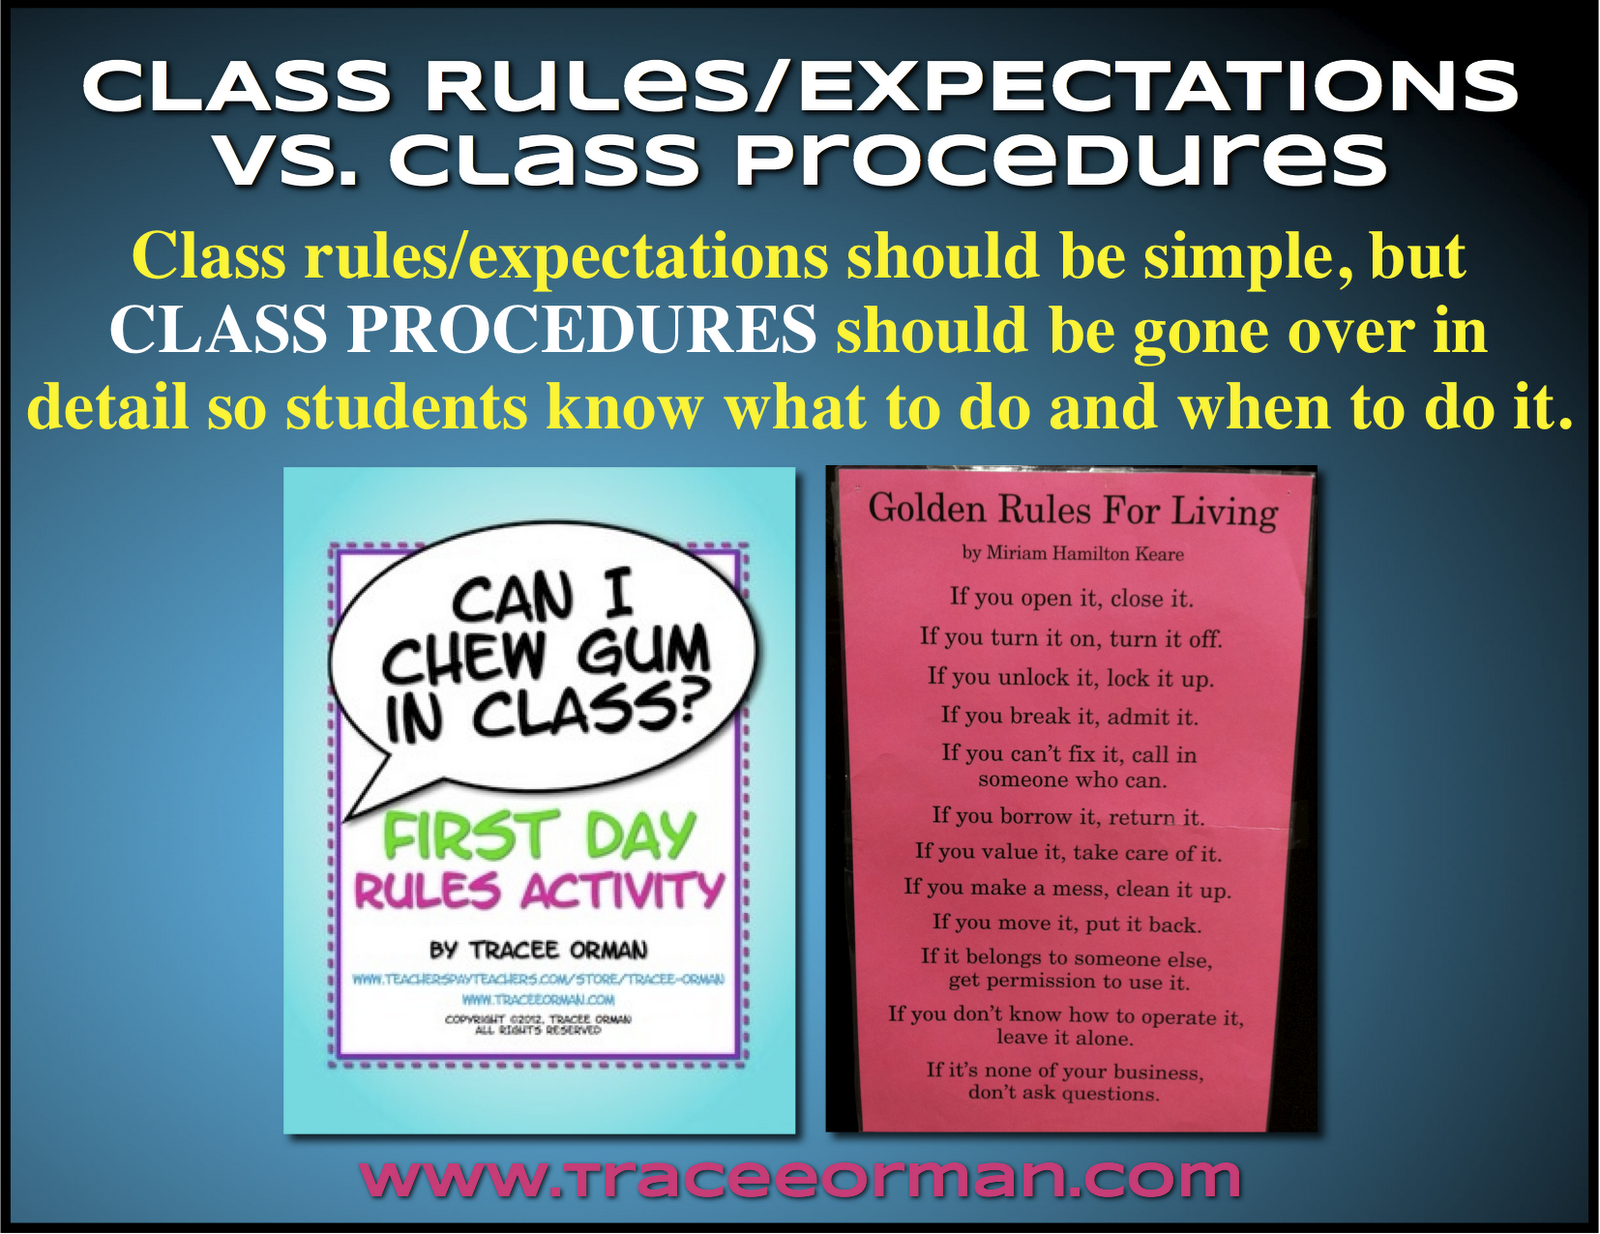 Classroom procedures classroom organization classroom management - Class Procedures Keep Class Rules Simple Save The Details For Your Class Procedures Find This Pin And More On Classroom Management